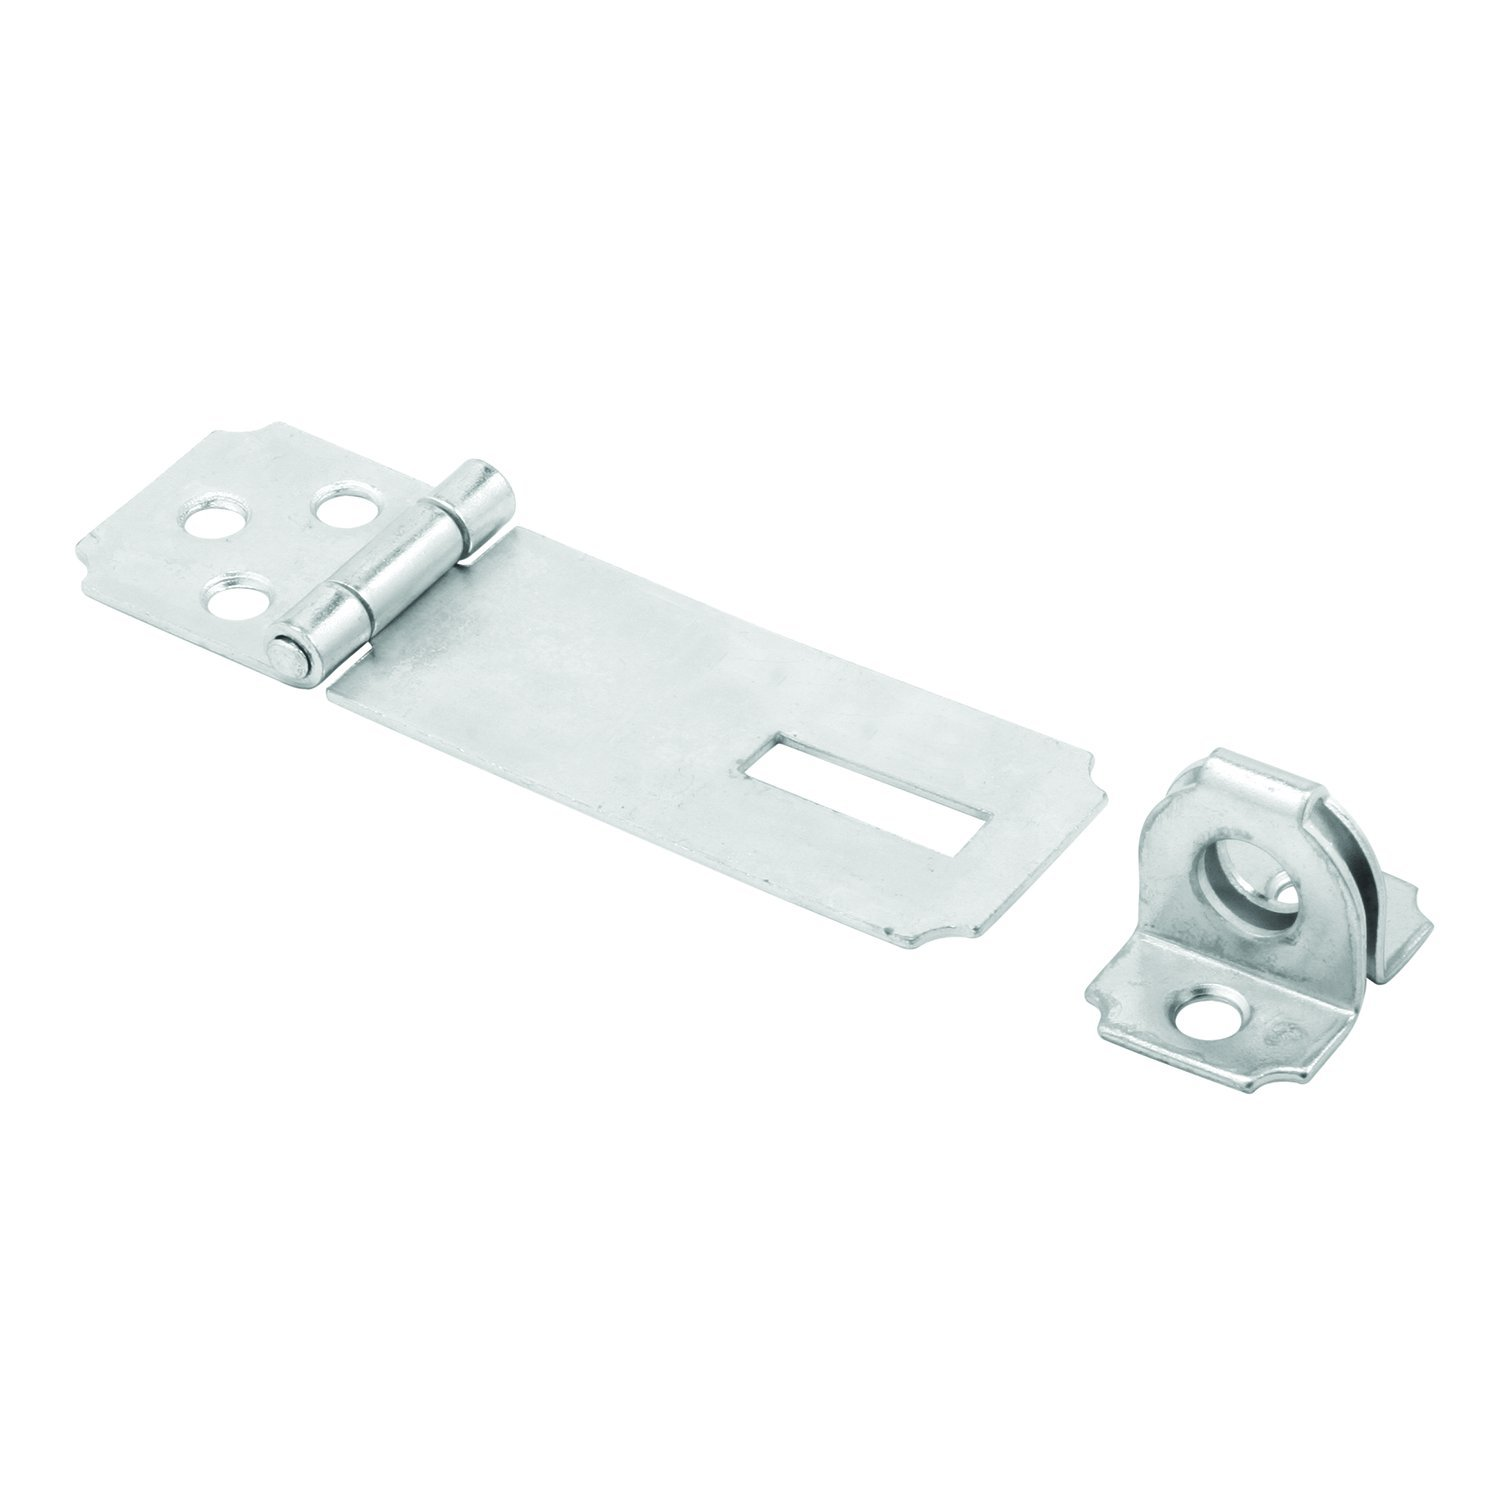 Prime Line MP5056 Safety Hasp 2 1 2 Inch Steel Construction Zinc Plated Finish Fixed Stapled Pack of 1